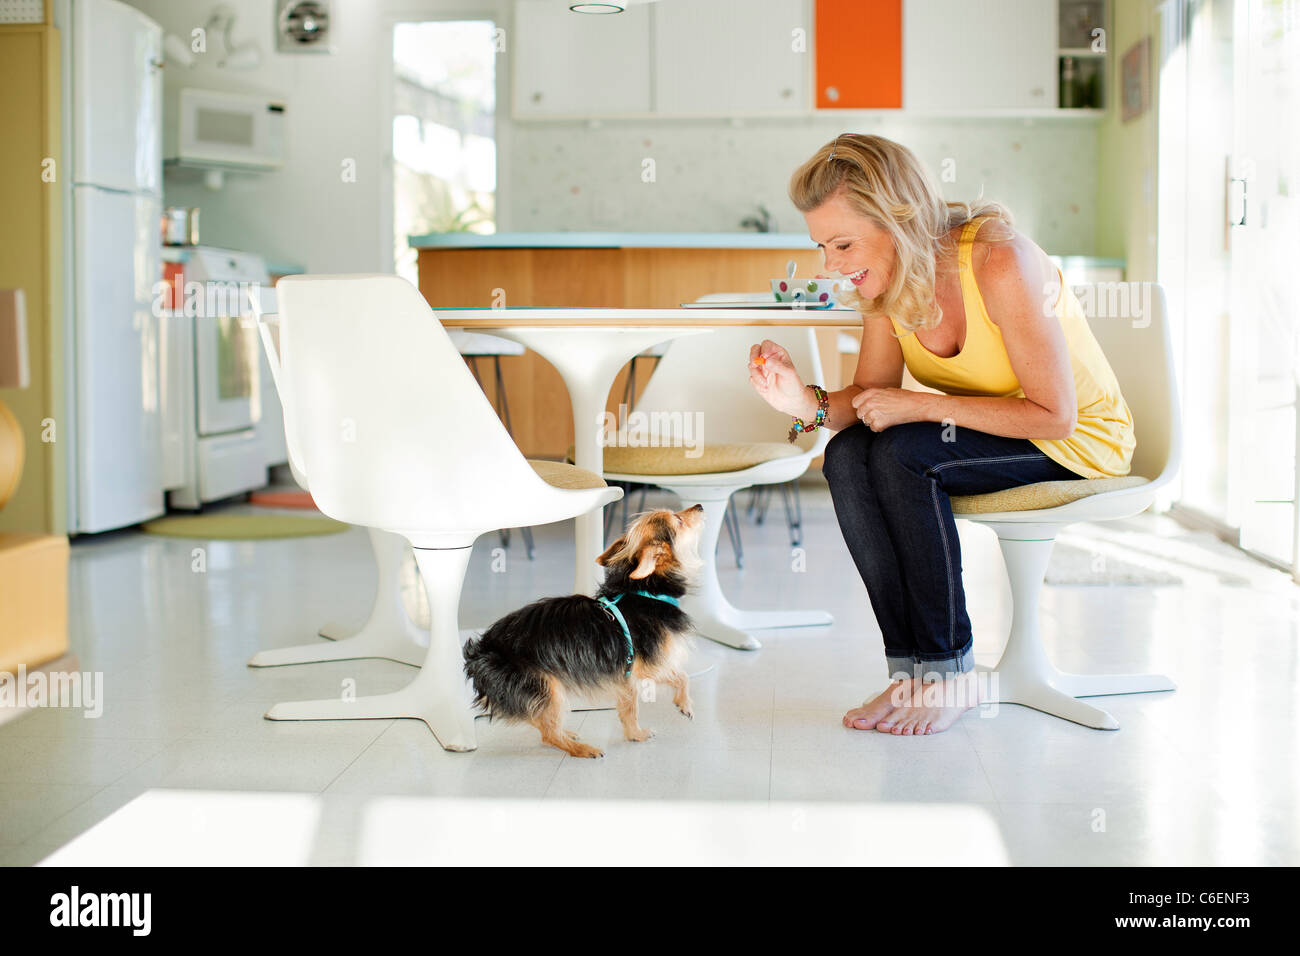 Caucasian woman giving dog treat in dining room Stock Photo